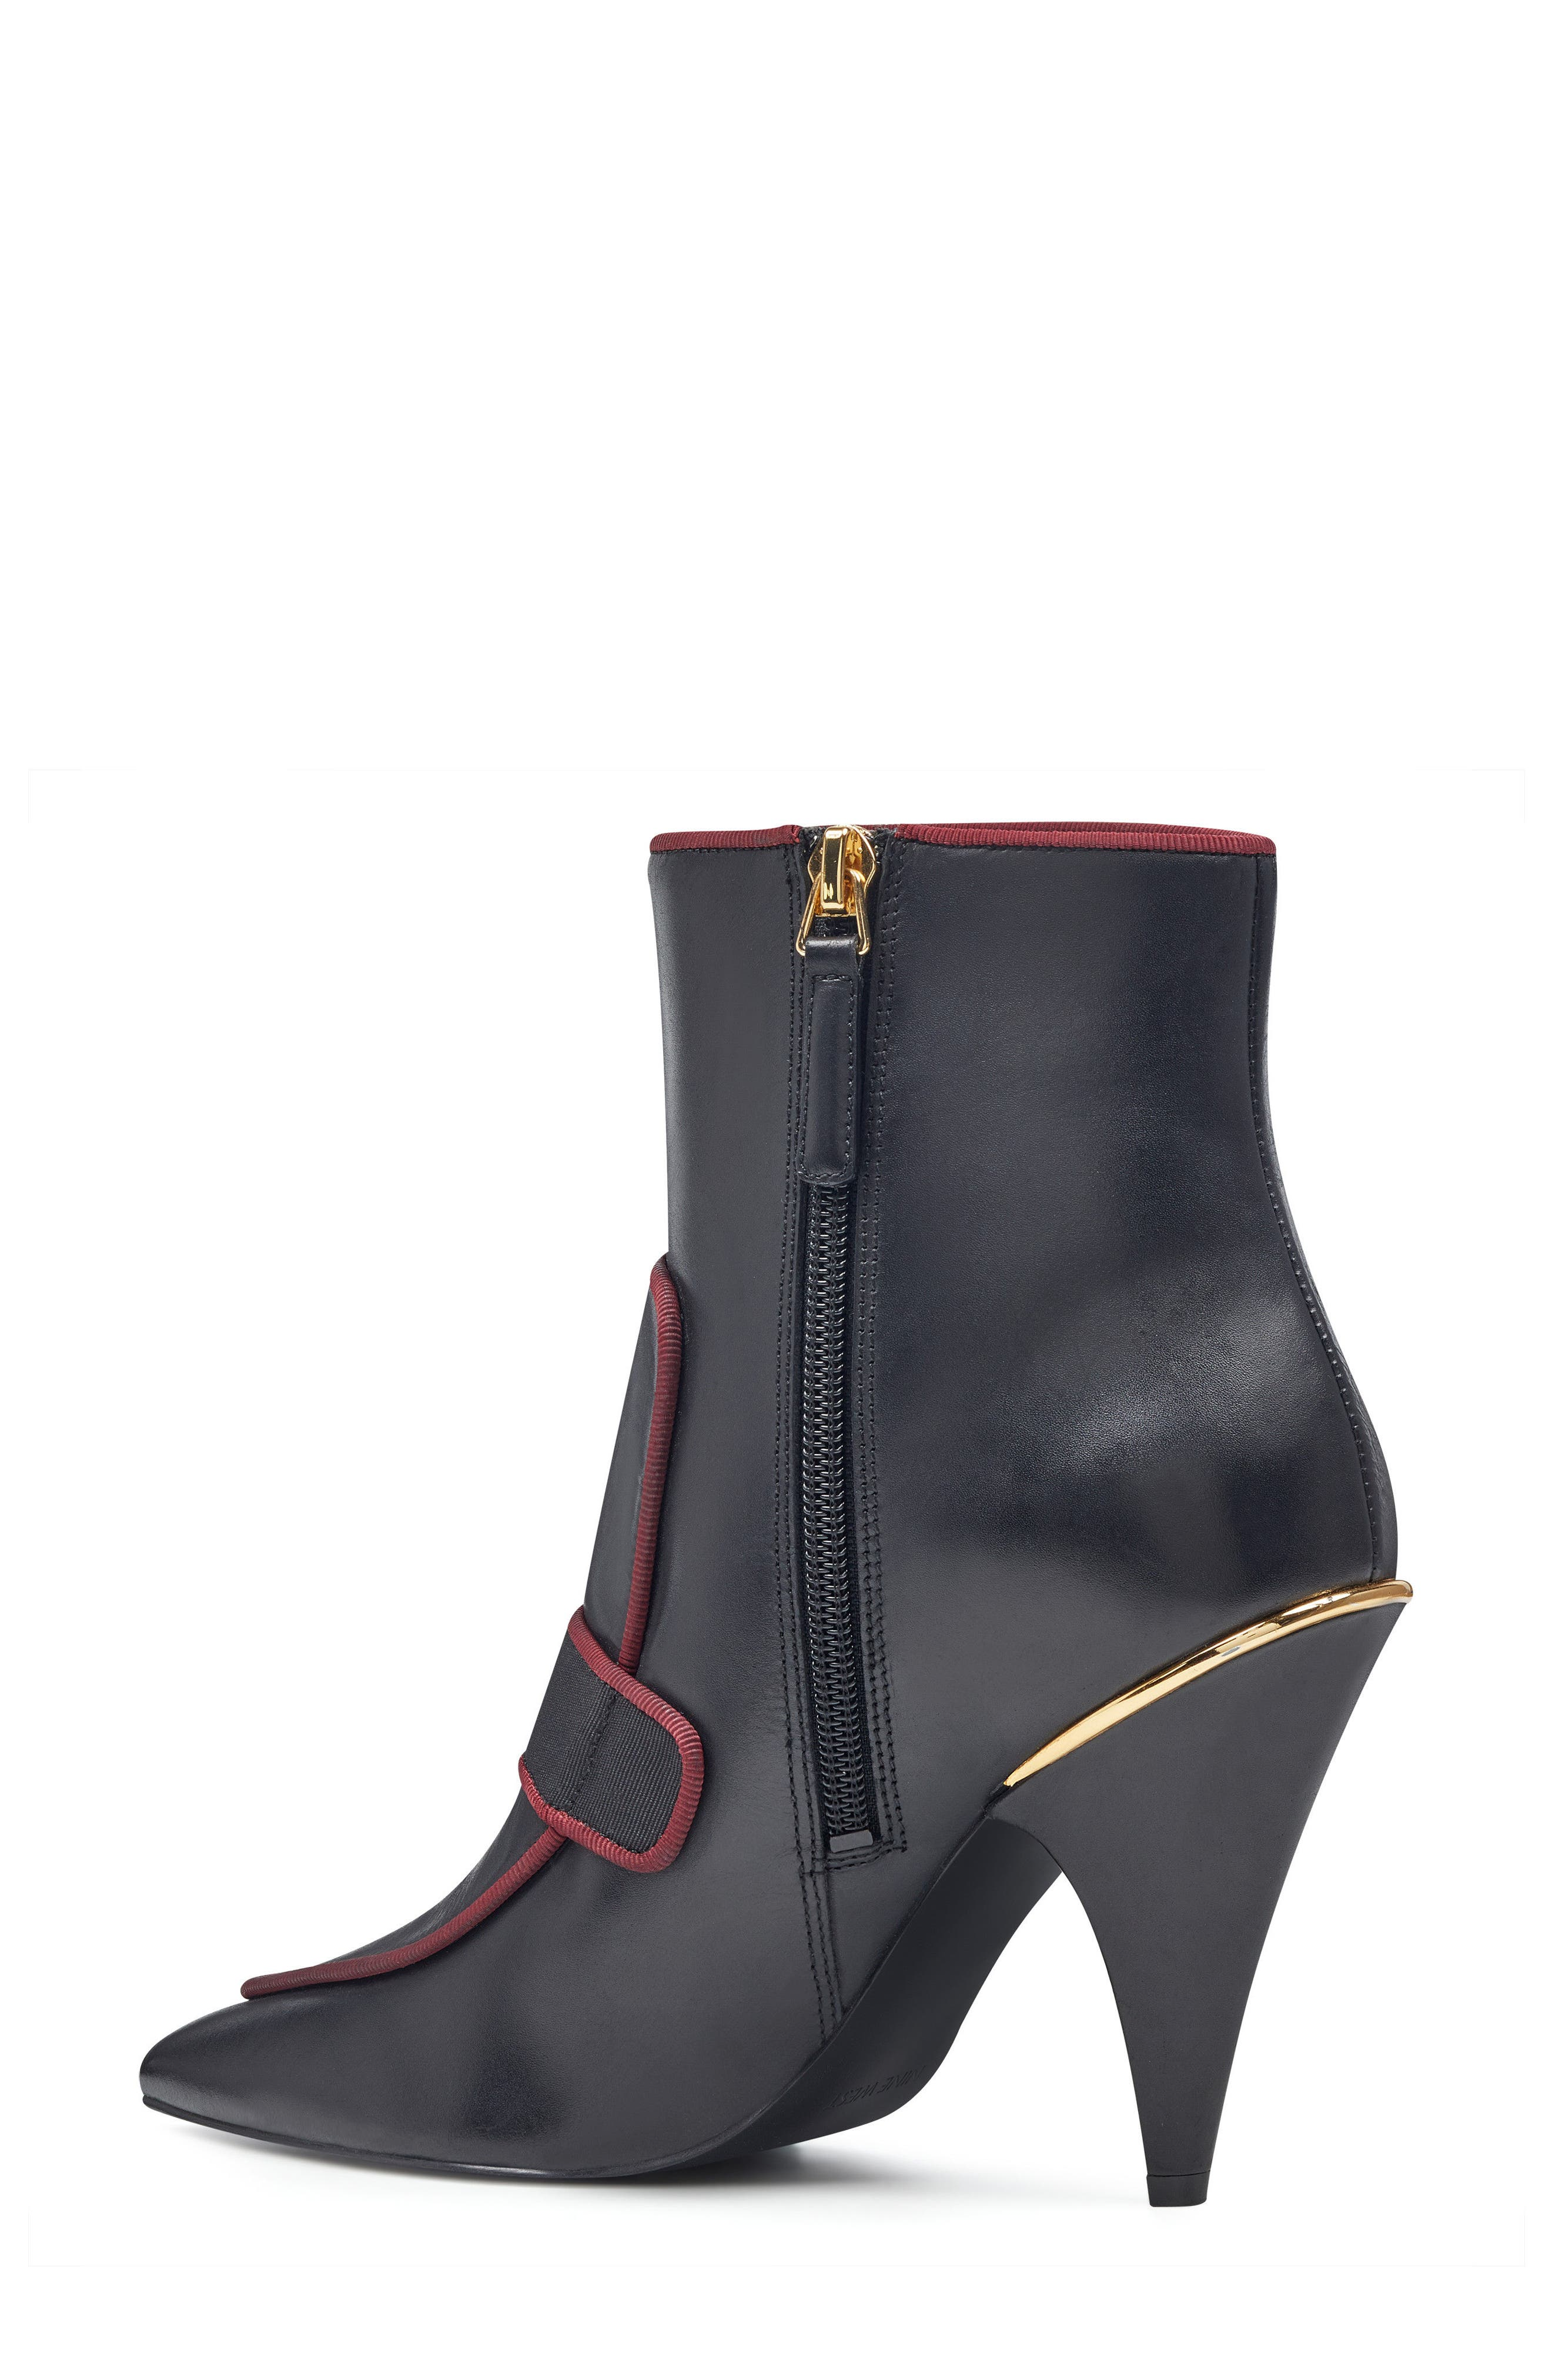 Westham Pointy Toe Bootie,                             Alternate thumbnail 2, color,                             001